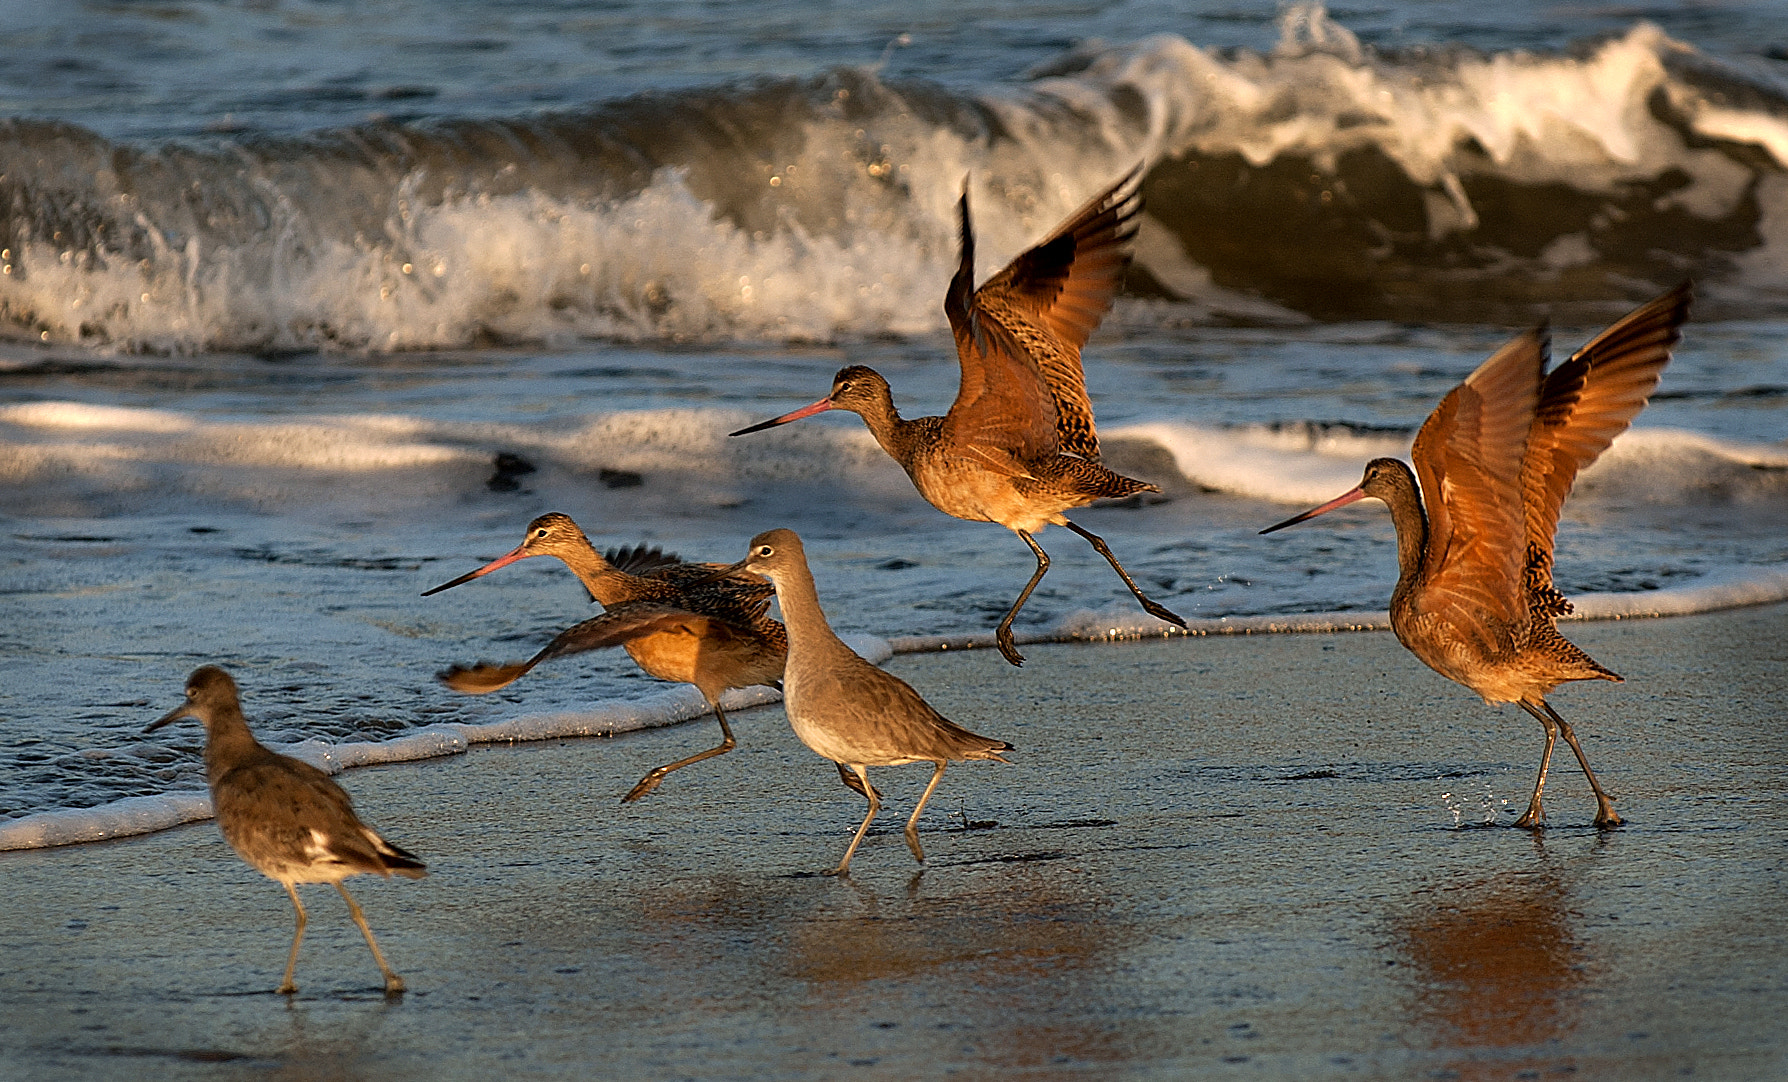 Photograph Let's go by Paul McConville on 500px